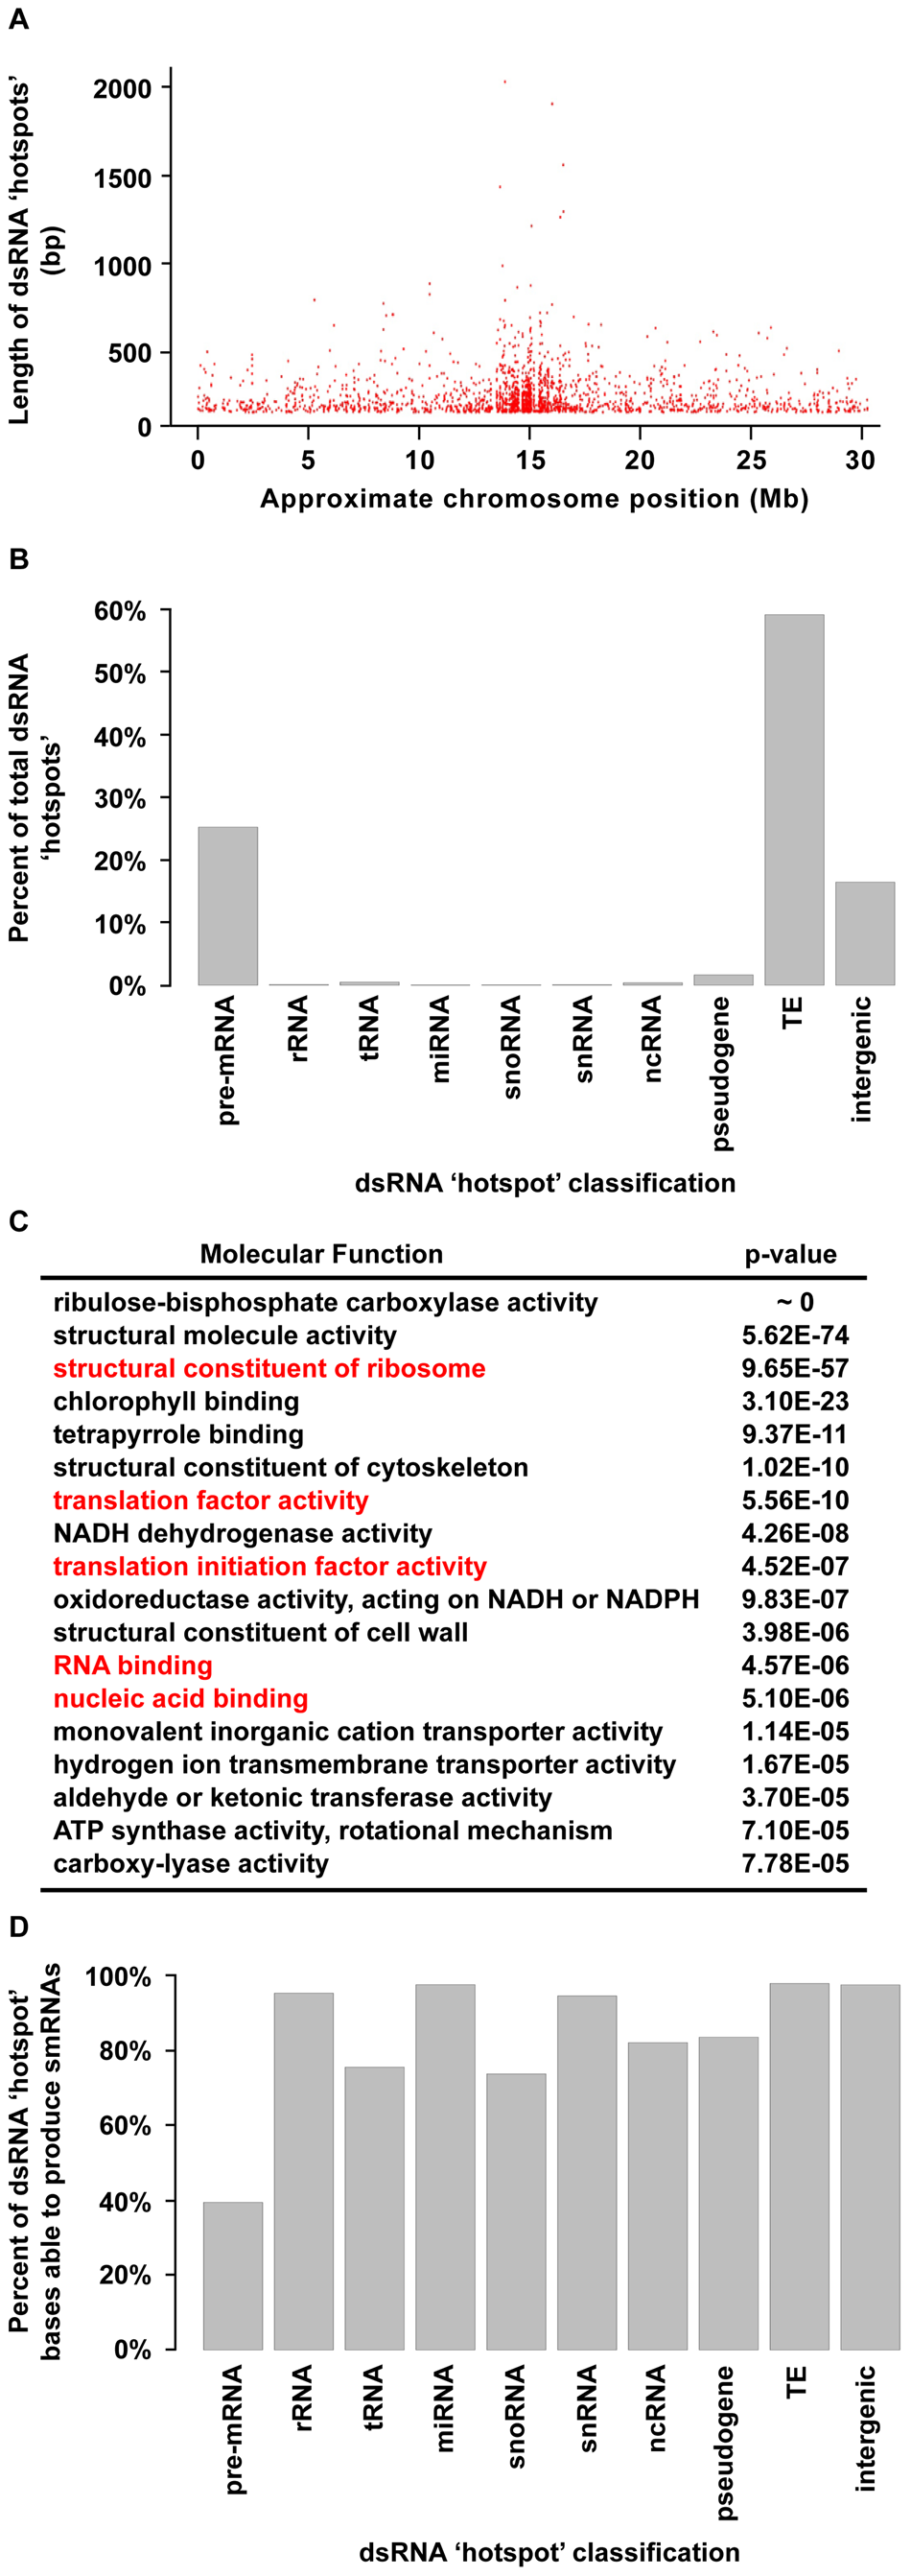 """Highly base-paired segments of the <i>Arabidopsis</i> genome (dsRNA """"hotspots"""")."""